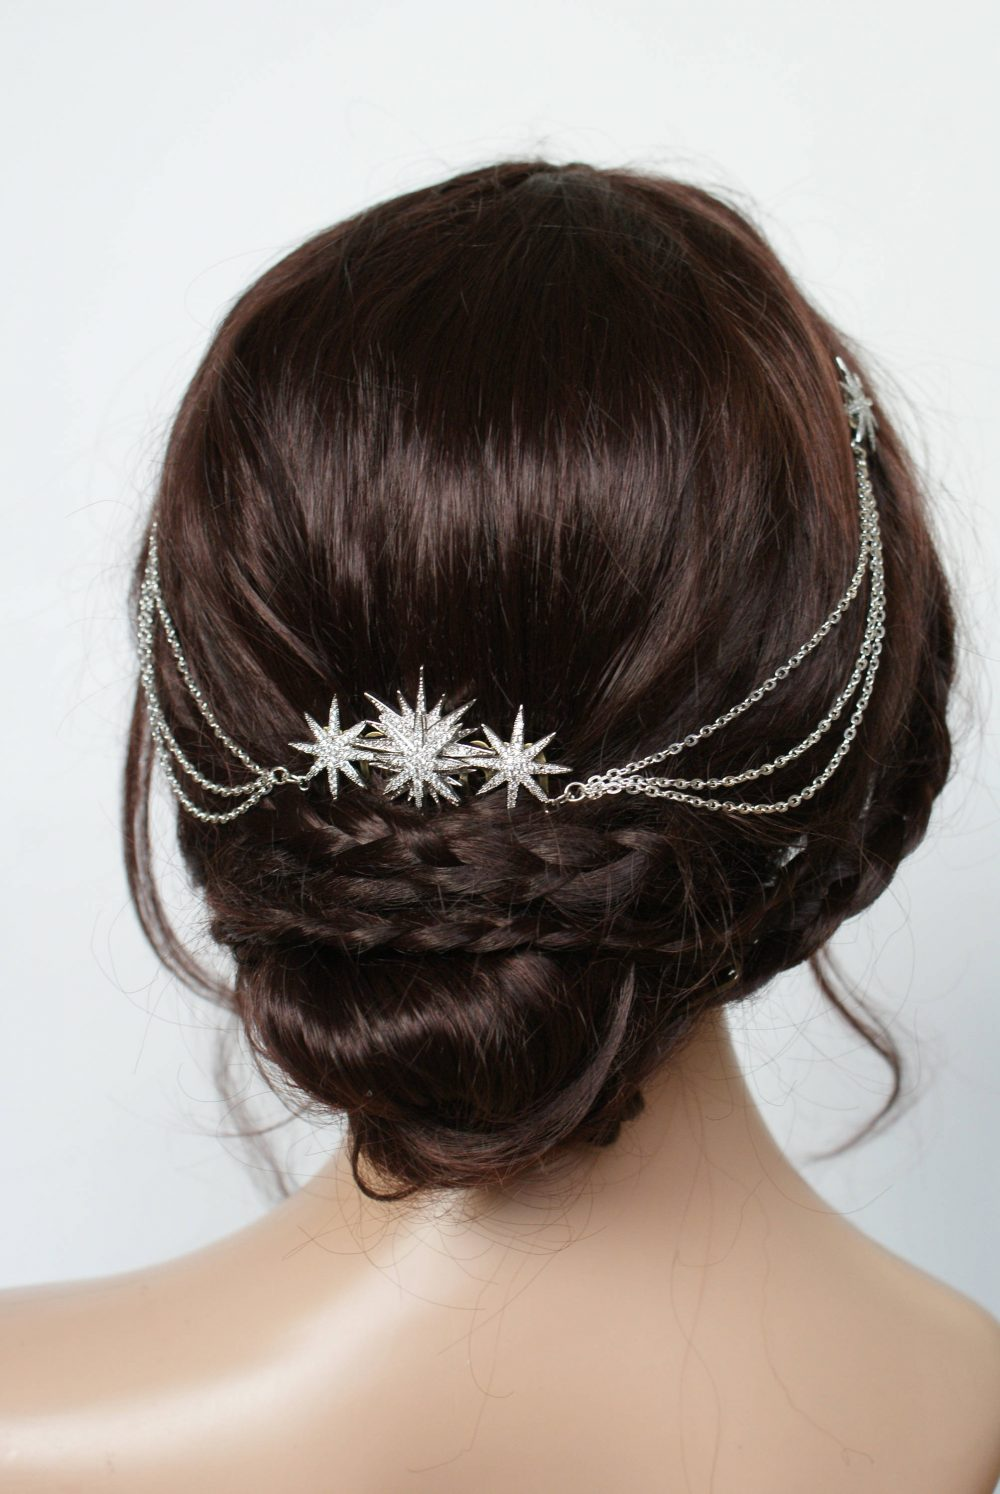 Star Bridal Headpiece - Wedding Hair Drape Celestial Accessory With Swags Silver Chain- Modern Stars